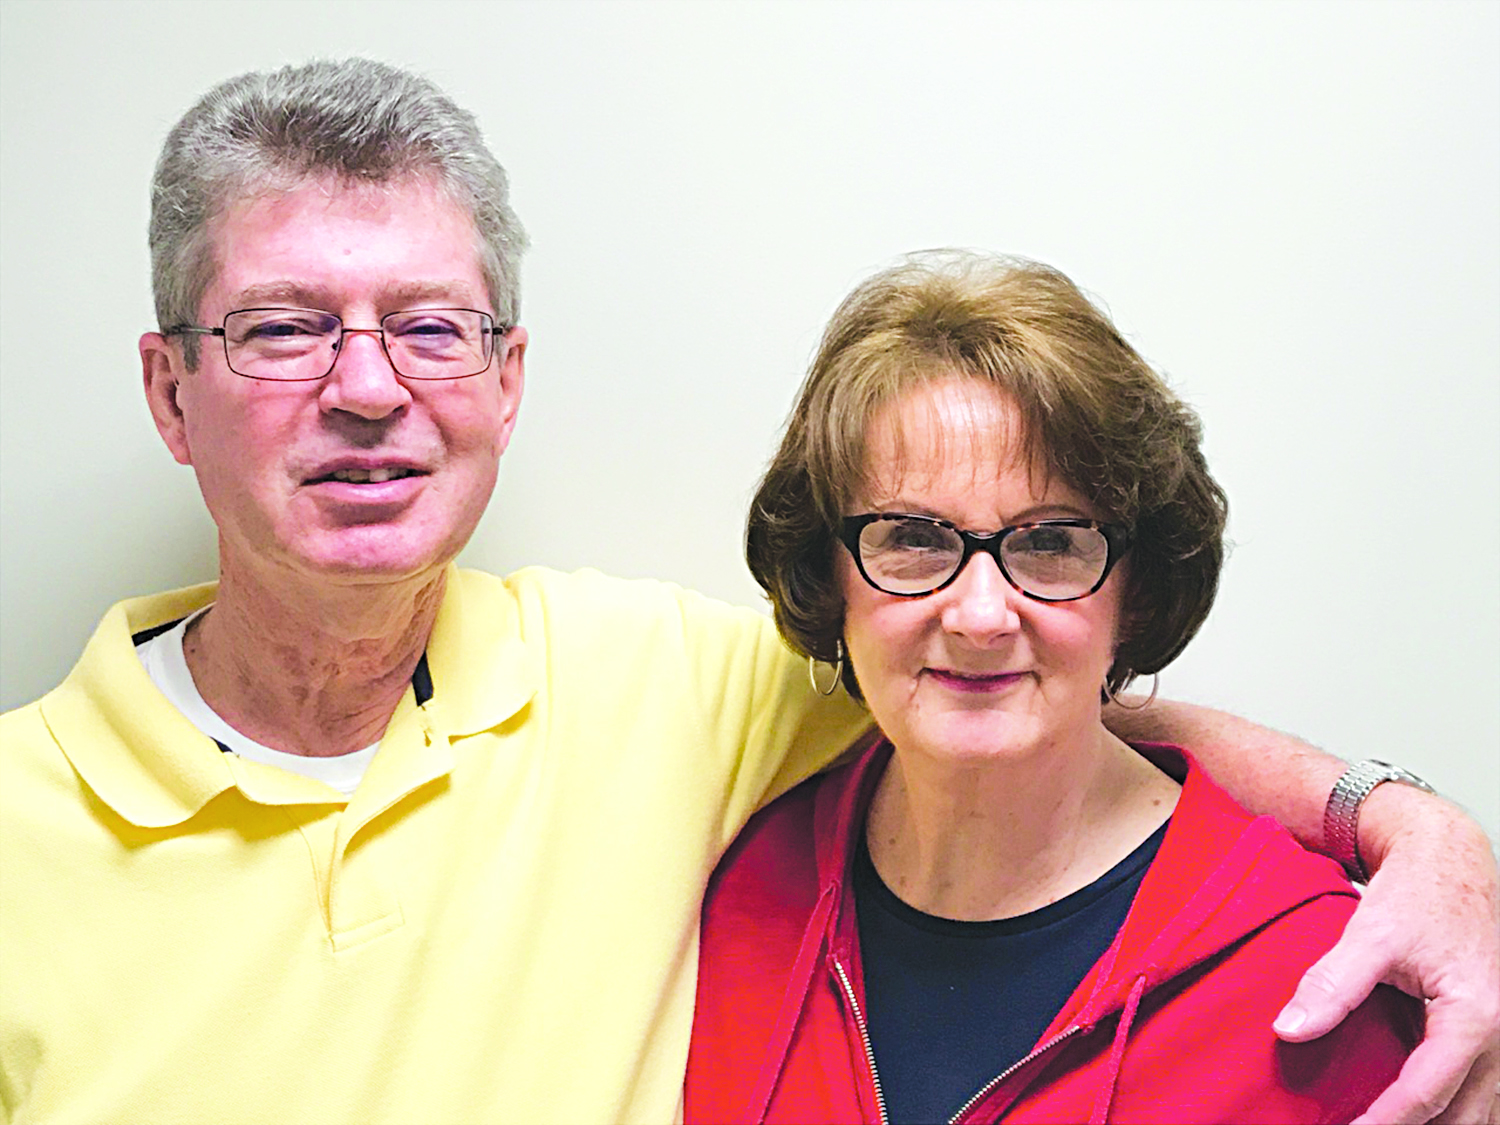 Read more about Jerry and Cheryl Strittmatter